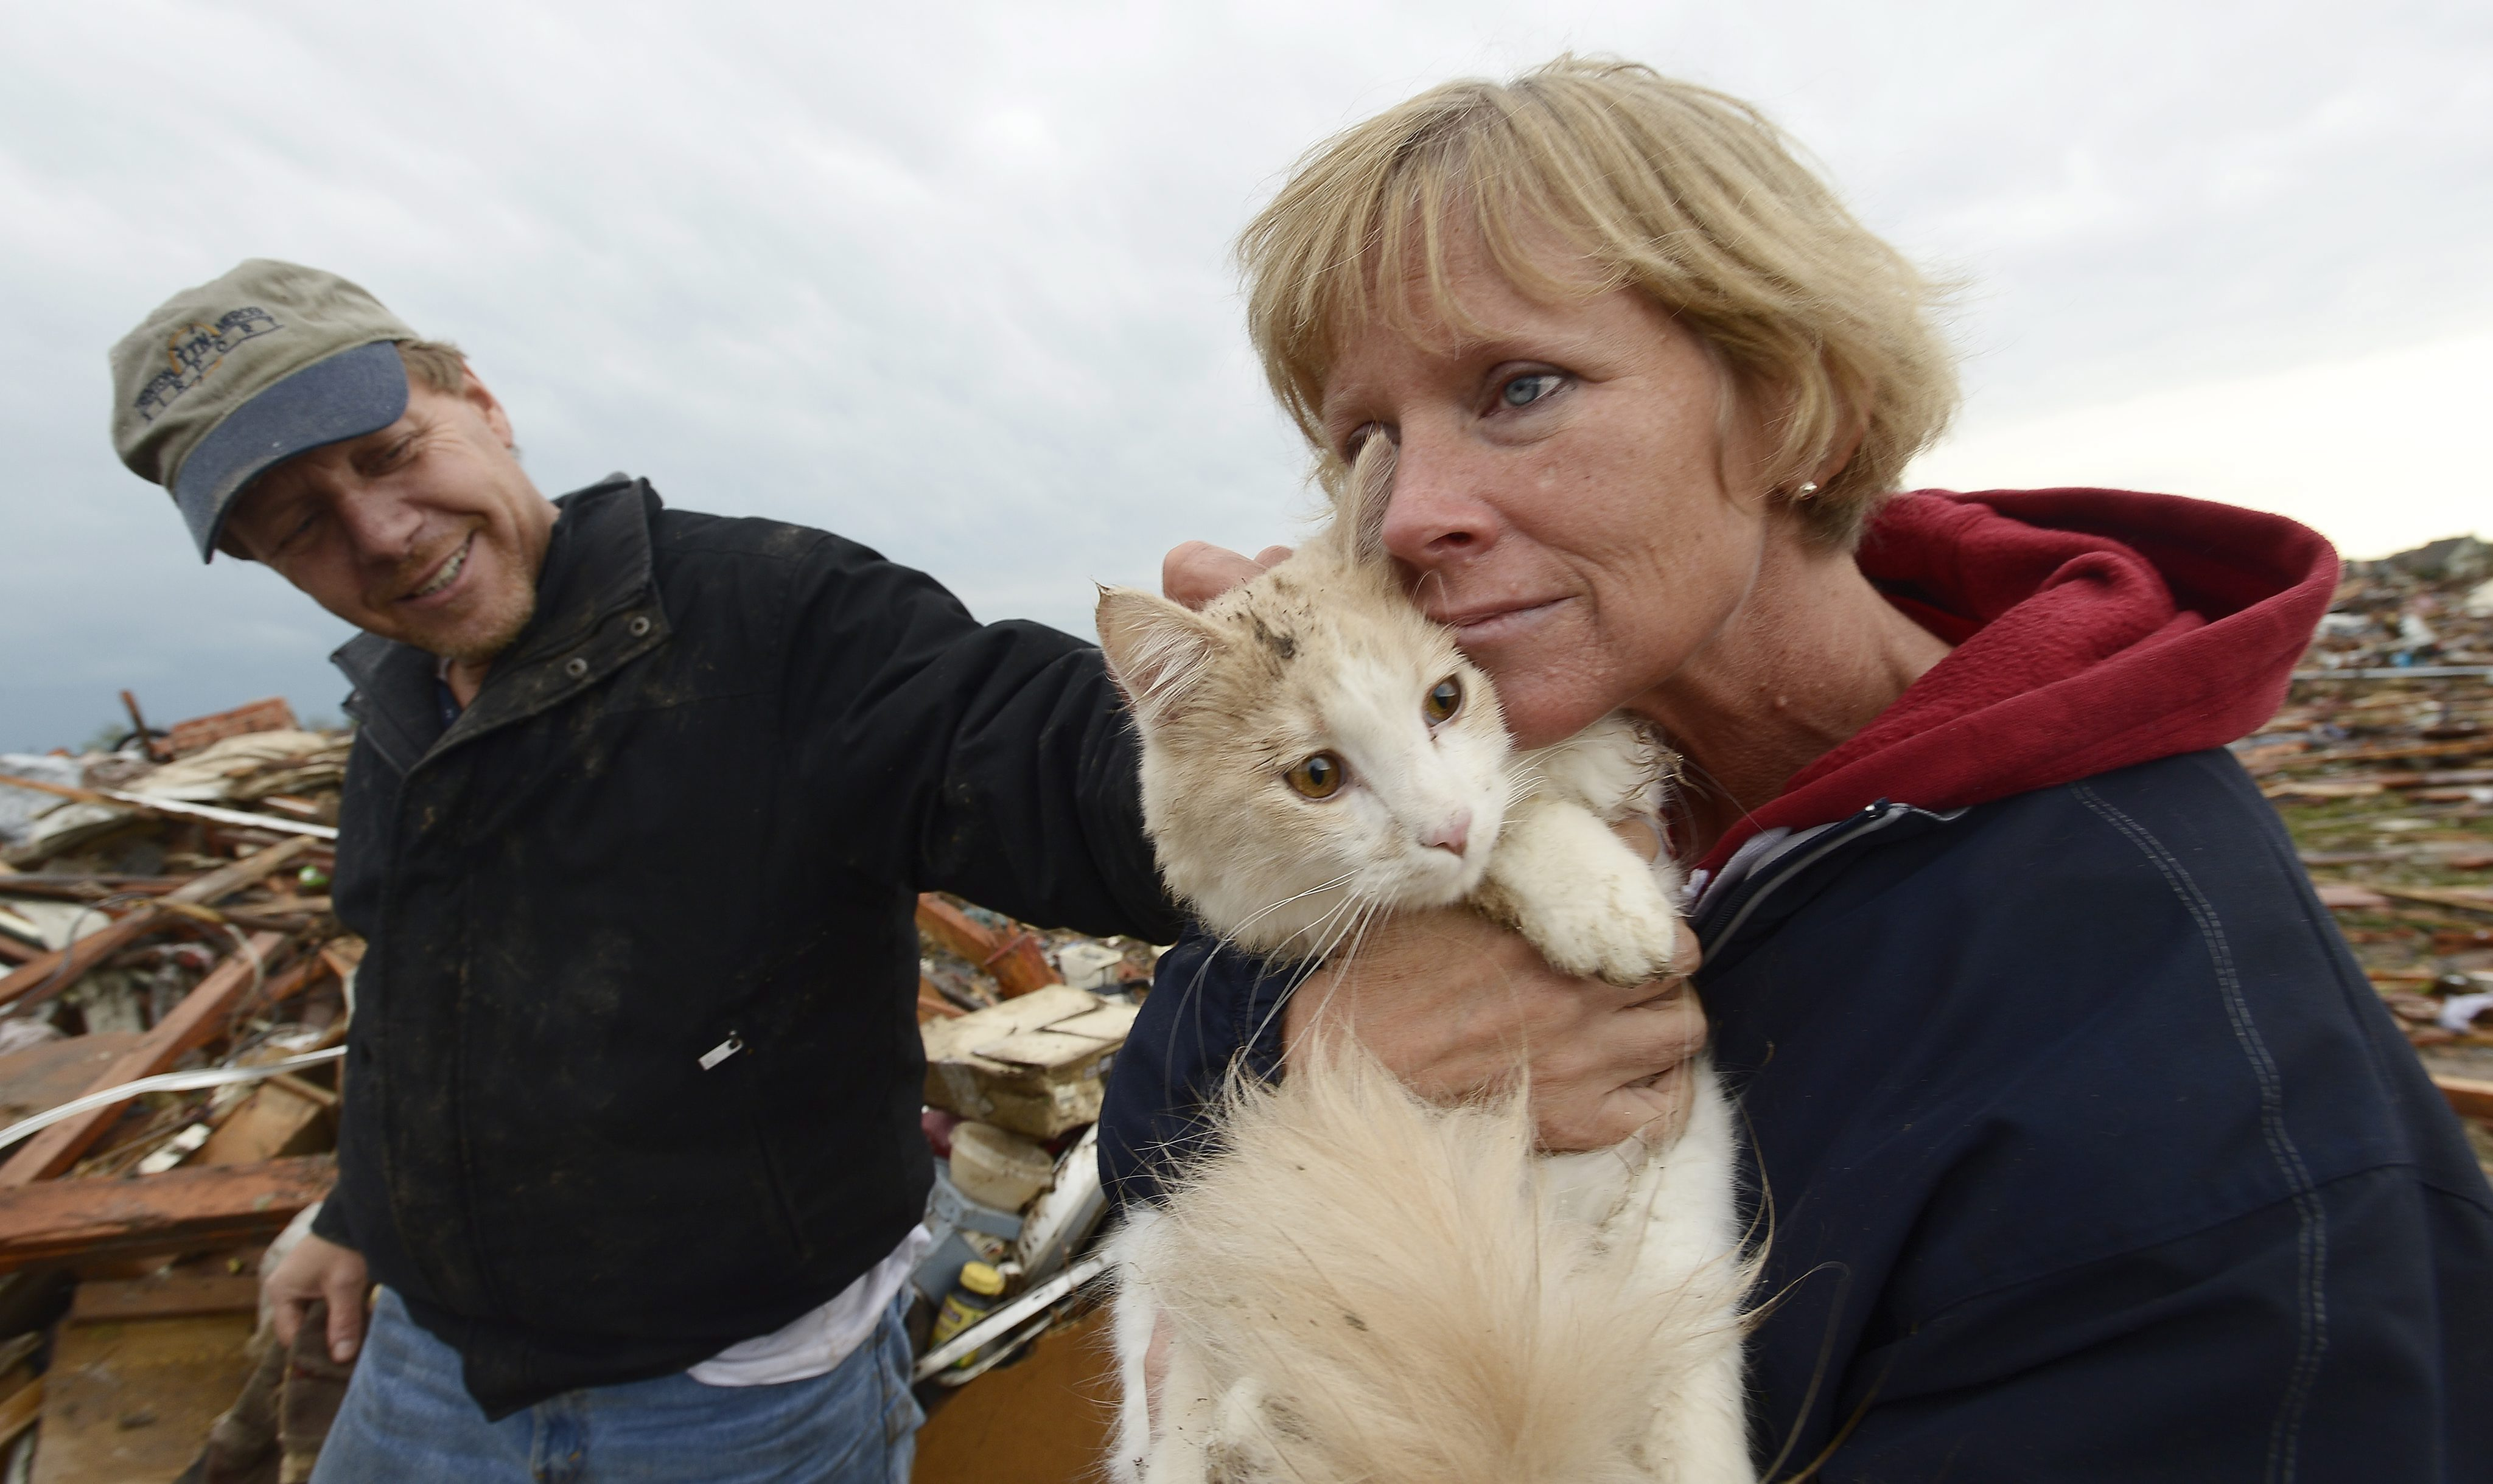 From left: Eric and June Simson hold their cat 'Sammi' seconds after finding it in the rubble of their home in a destroyed neighborhood in Moore, Okla., May 21, 2013.